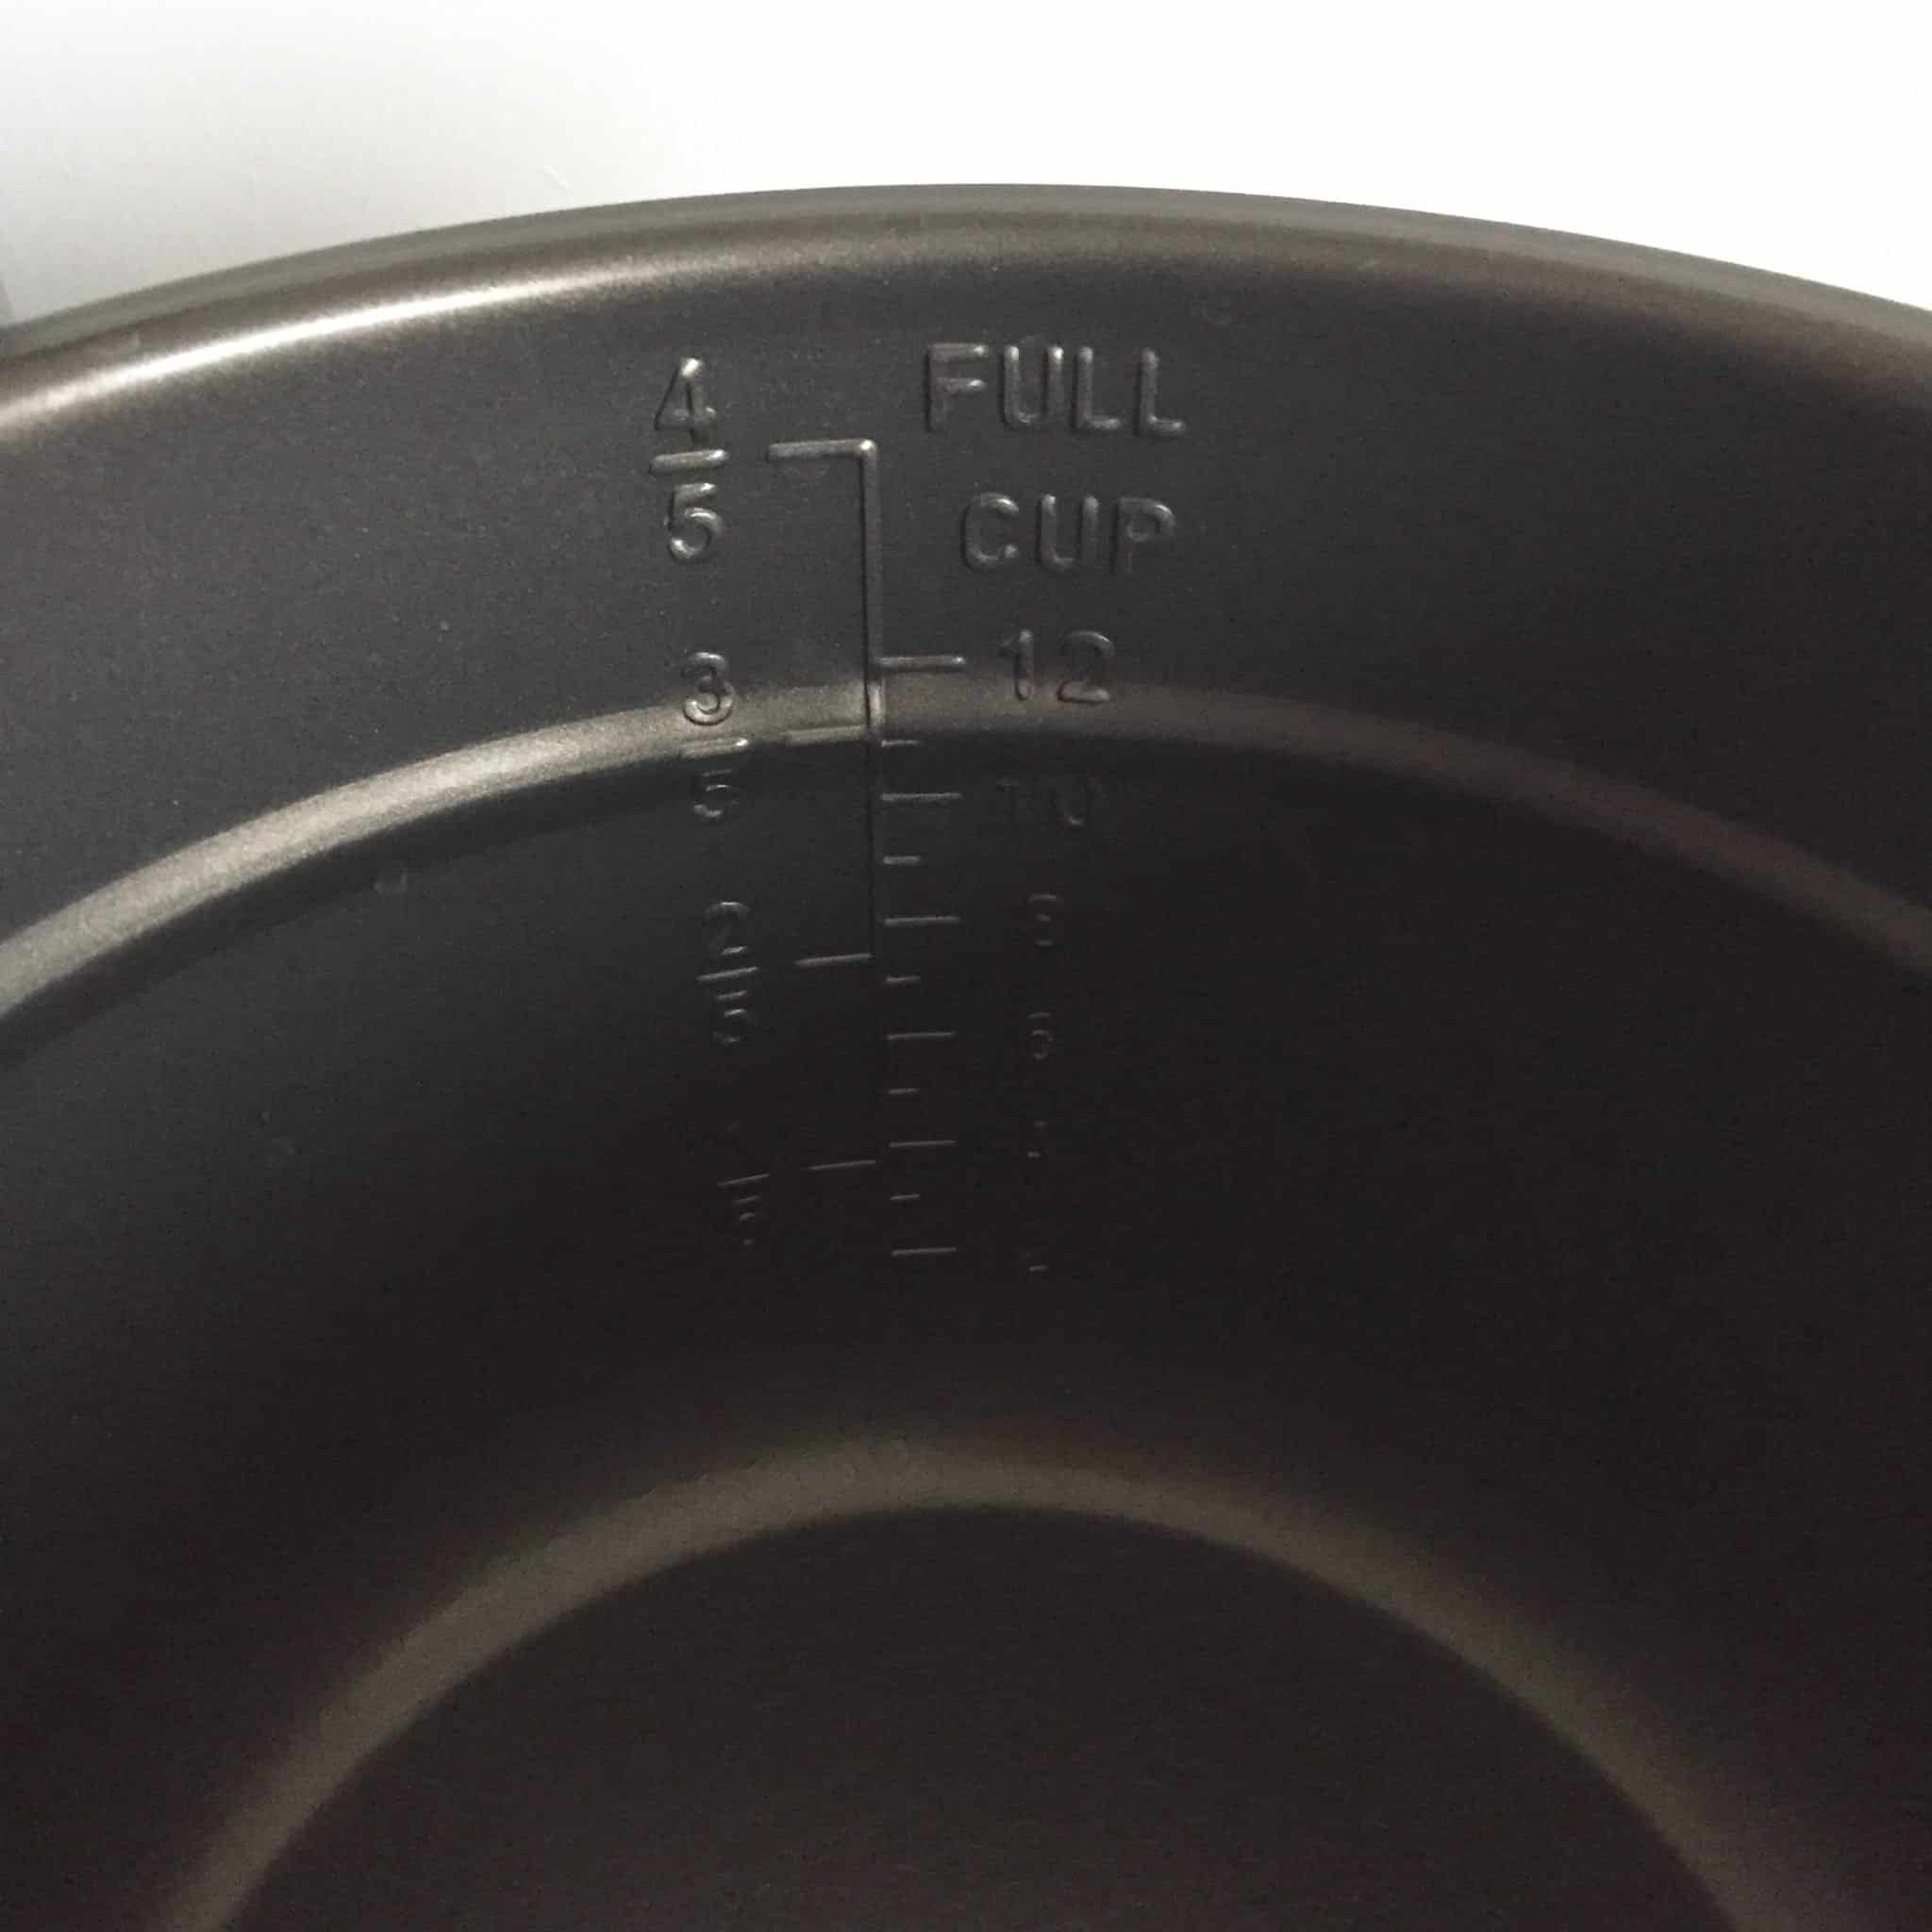 Easy to read measurements in the cooking pot of the Bella Electric Pressure Cooker